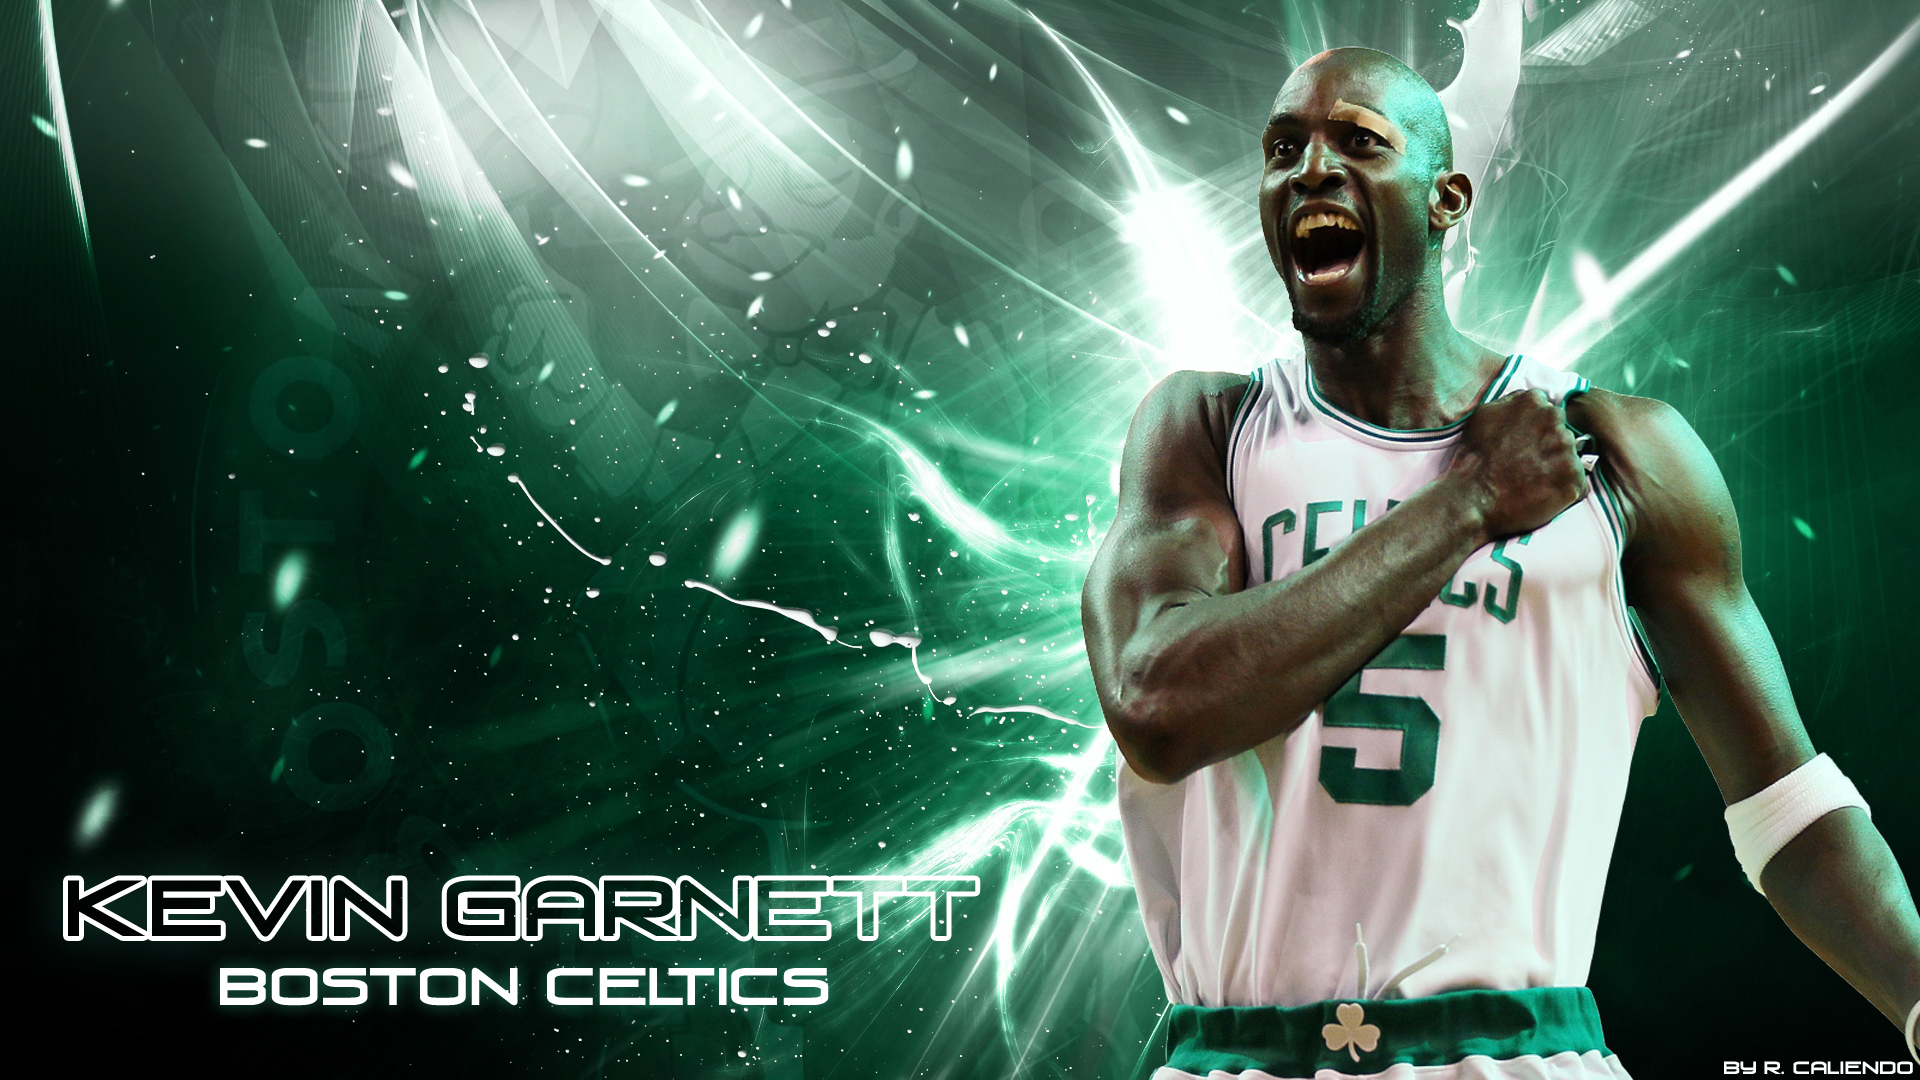 Kevin Garnett HD Wallpaper by DonCaliendo 1920x1080